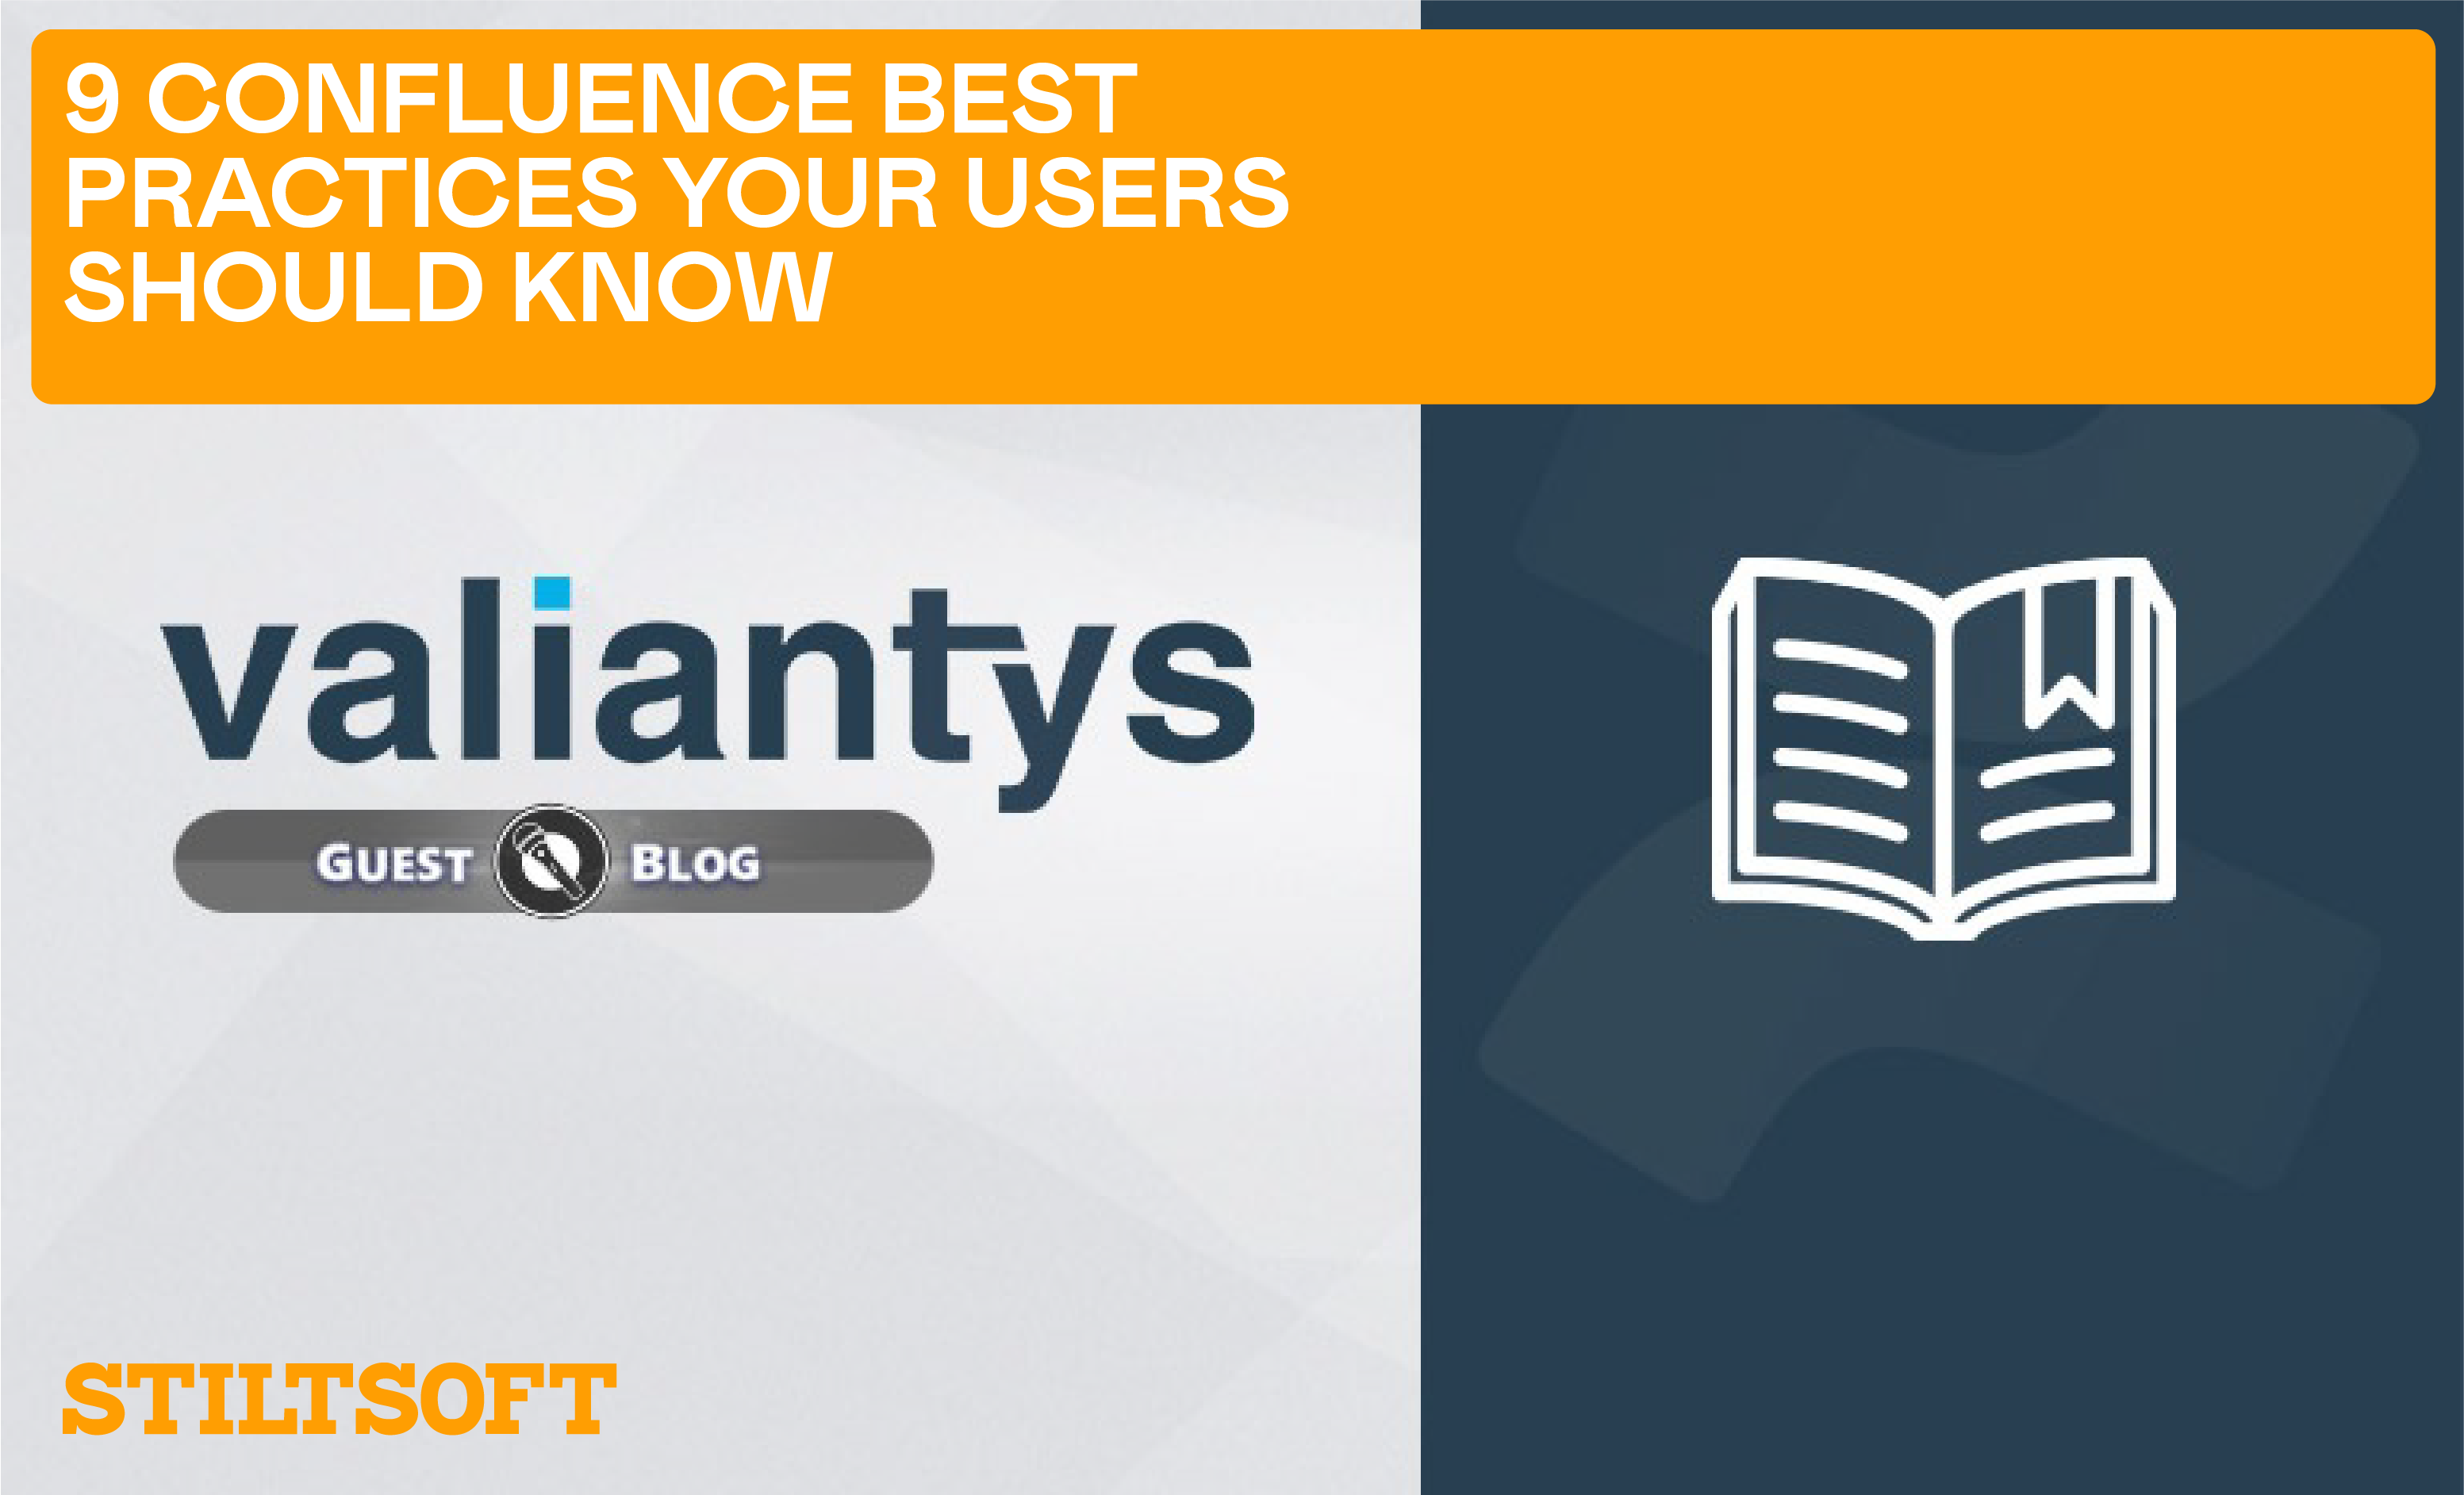 9 Confluence Best Practices Your Users Should Know